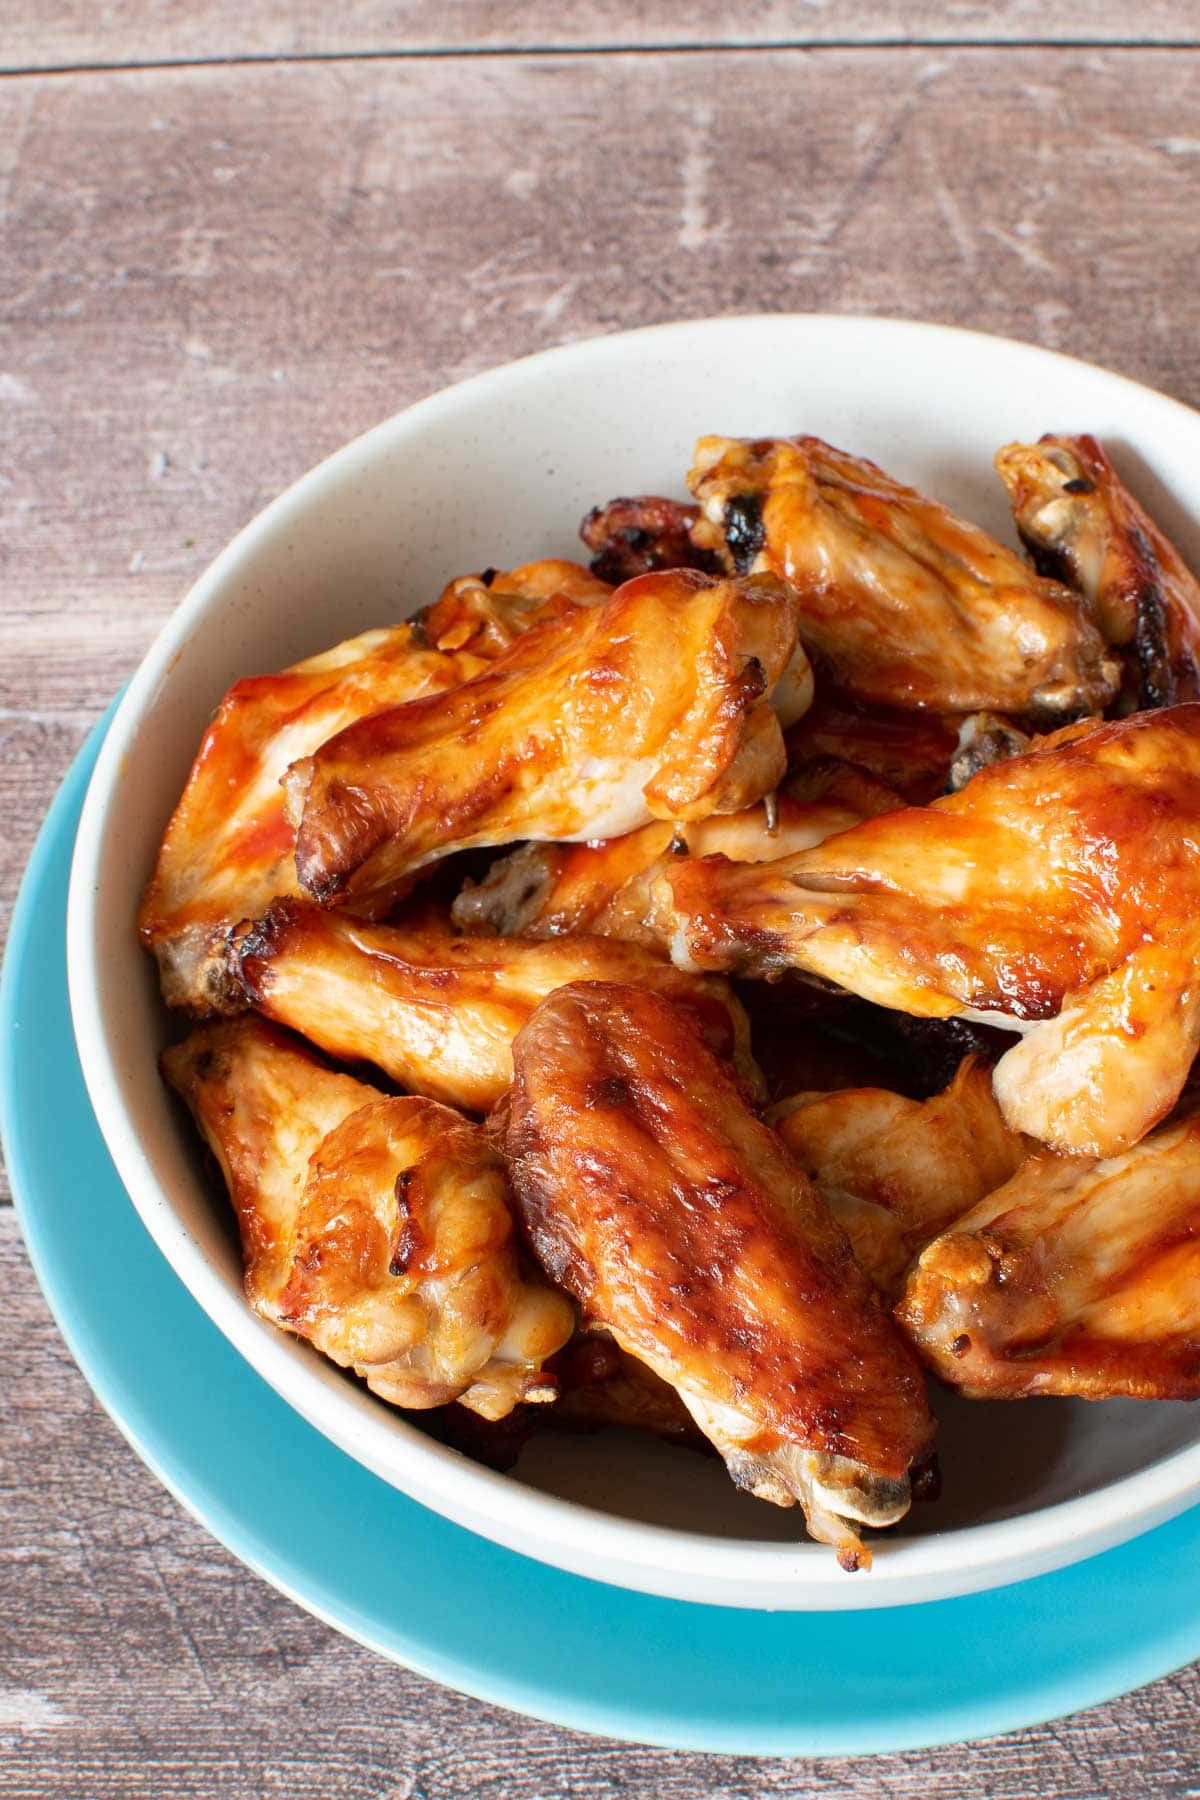 A bowl of chicken wings with sriracha and honey.